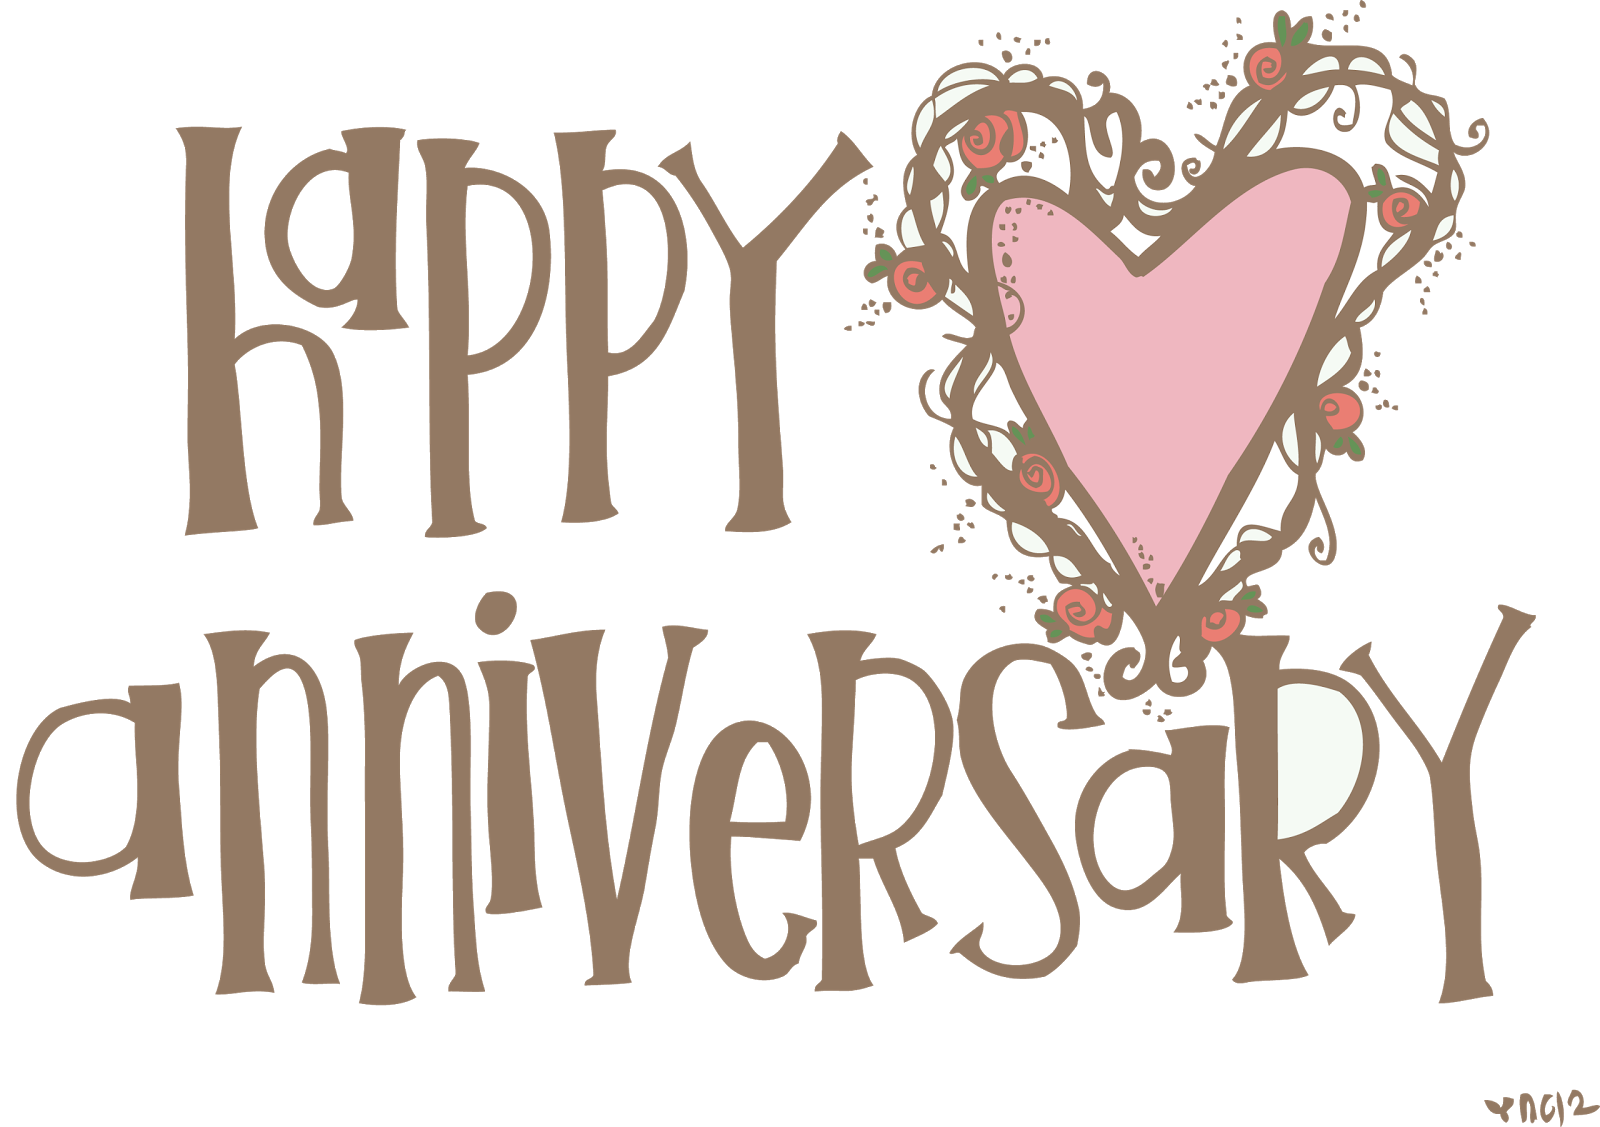 Free image images pictures. Anniversary clipart april